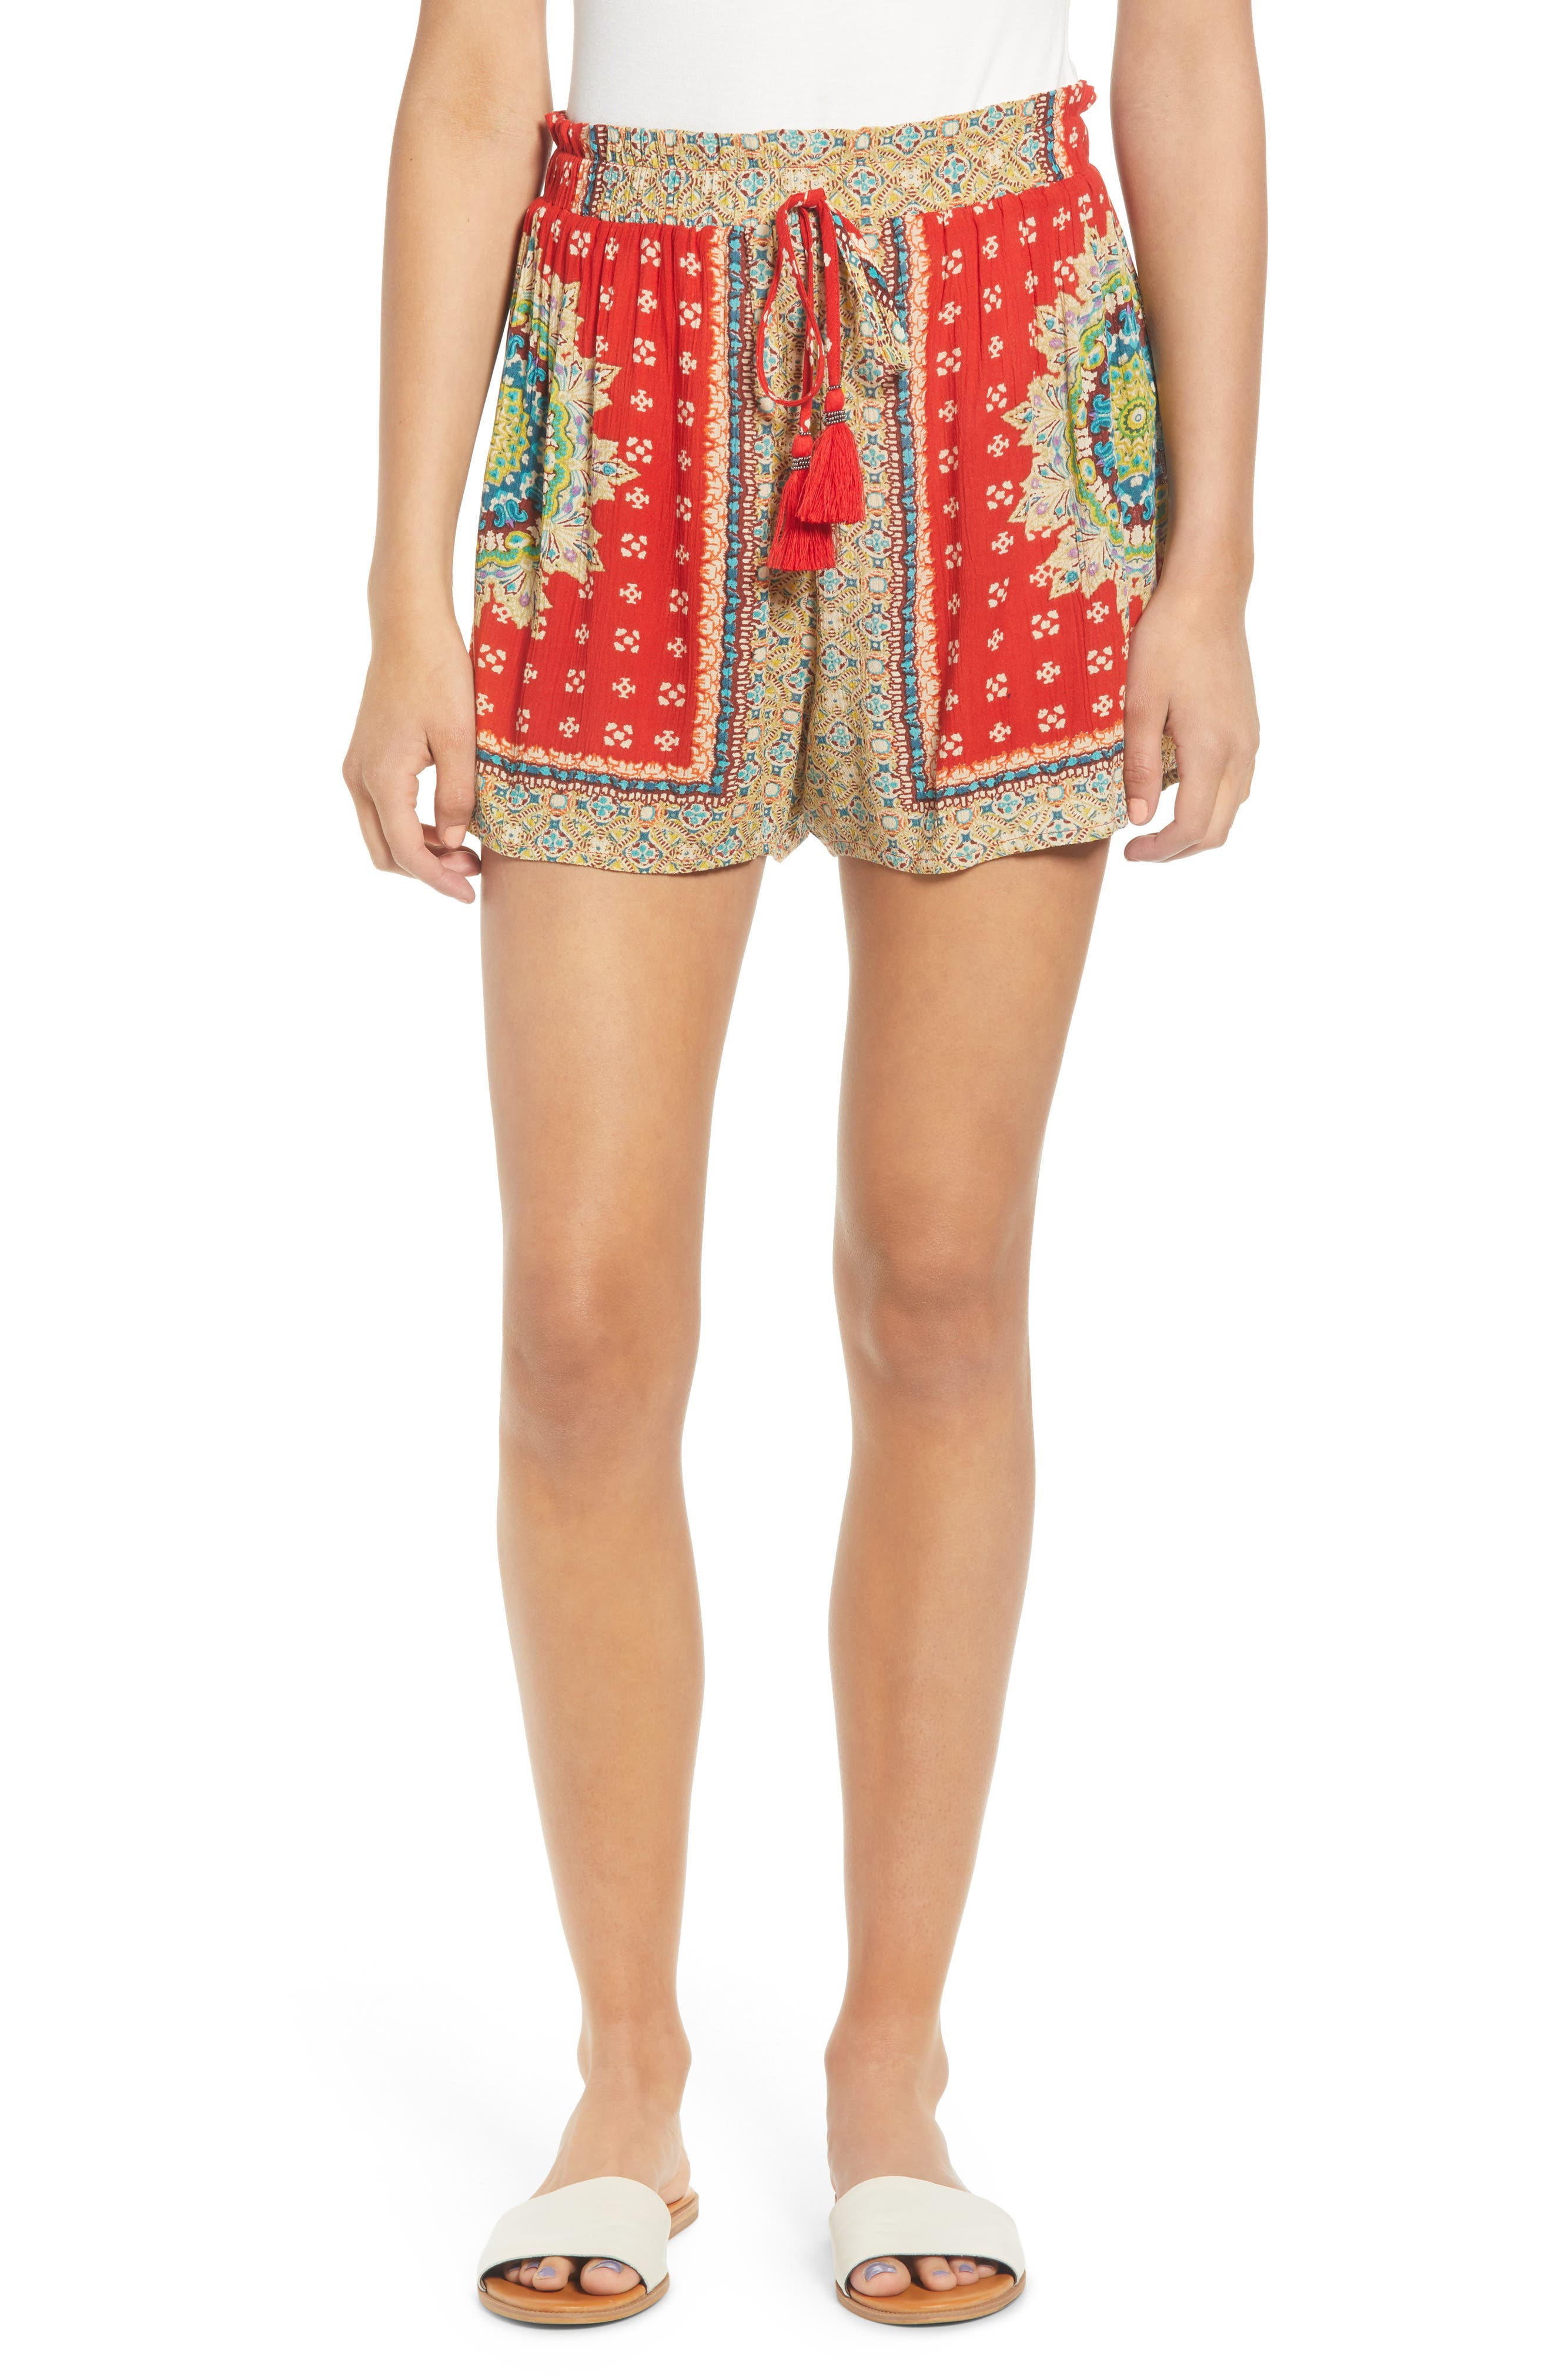 Band Of Gypsies Venice Print Tassel Shorts, Red